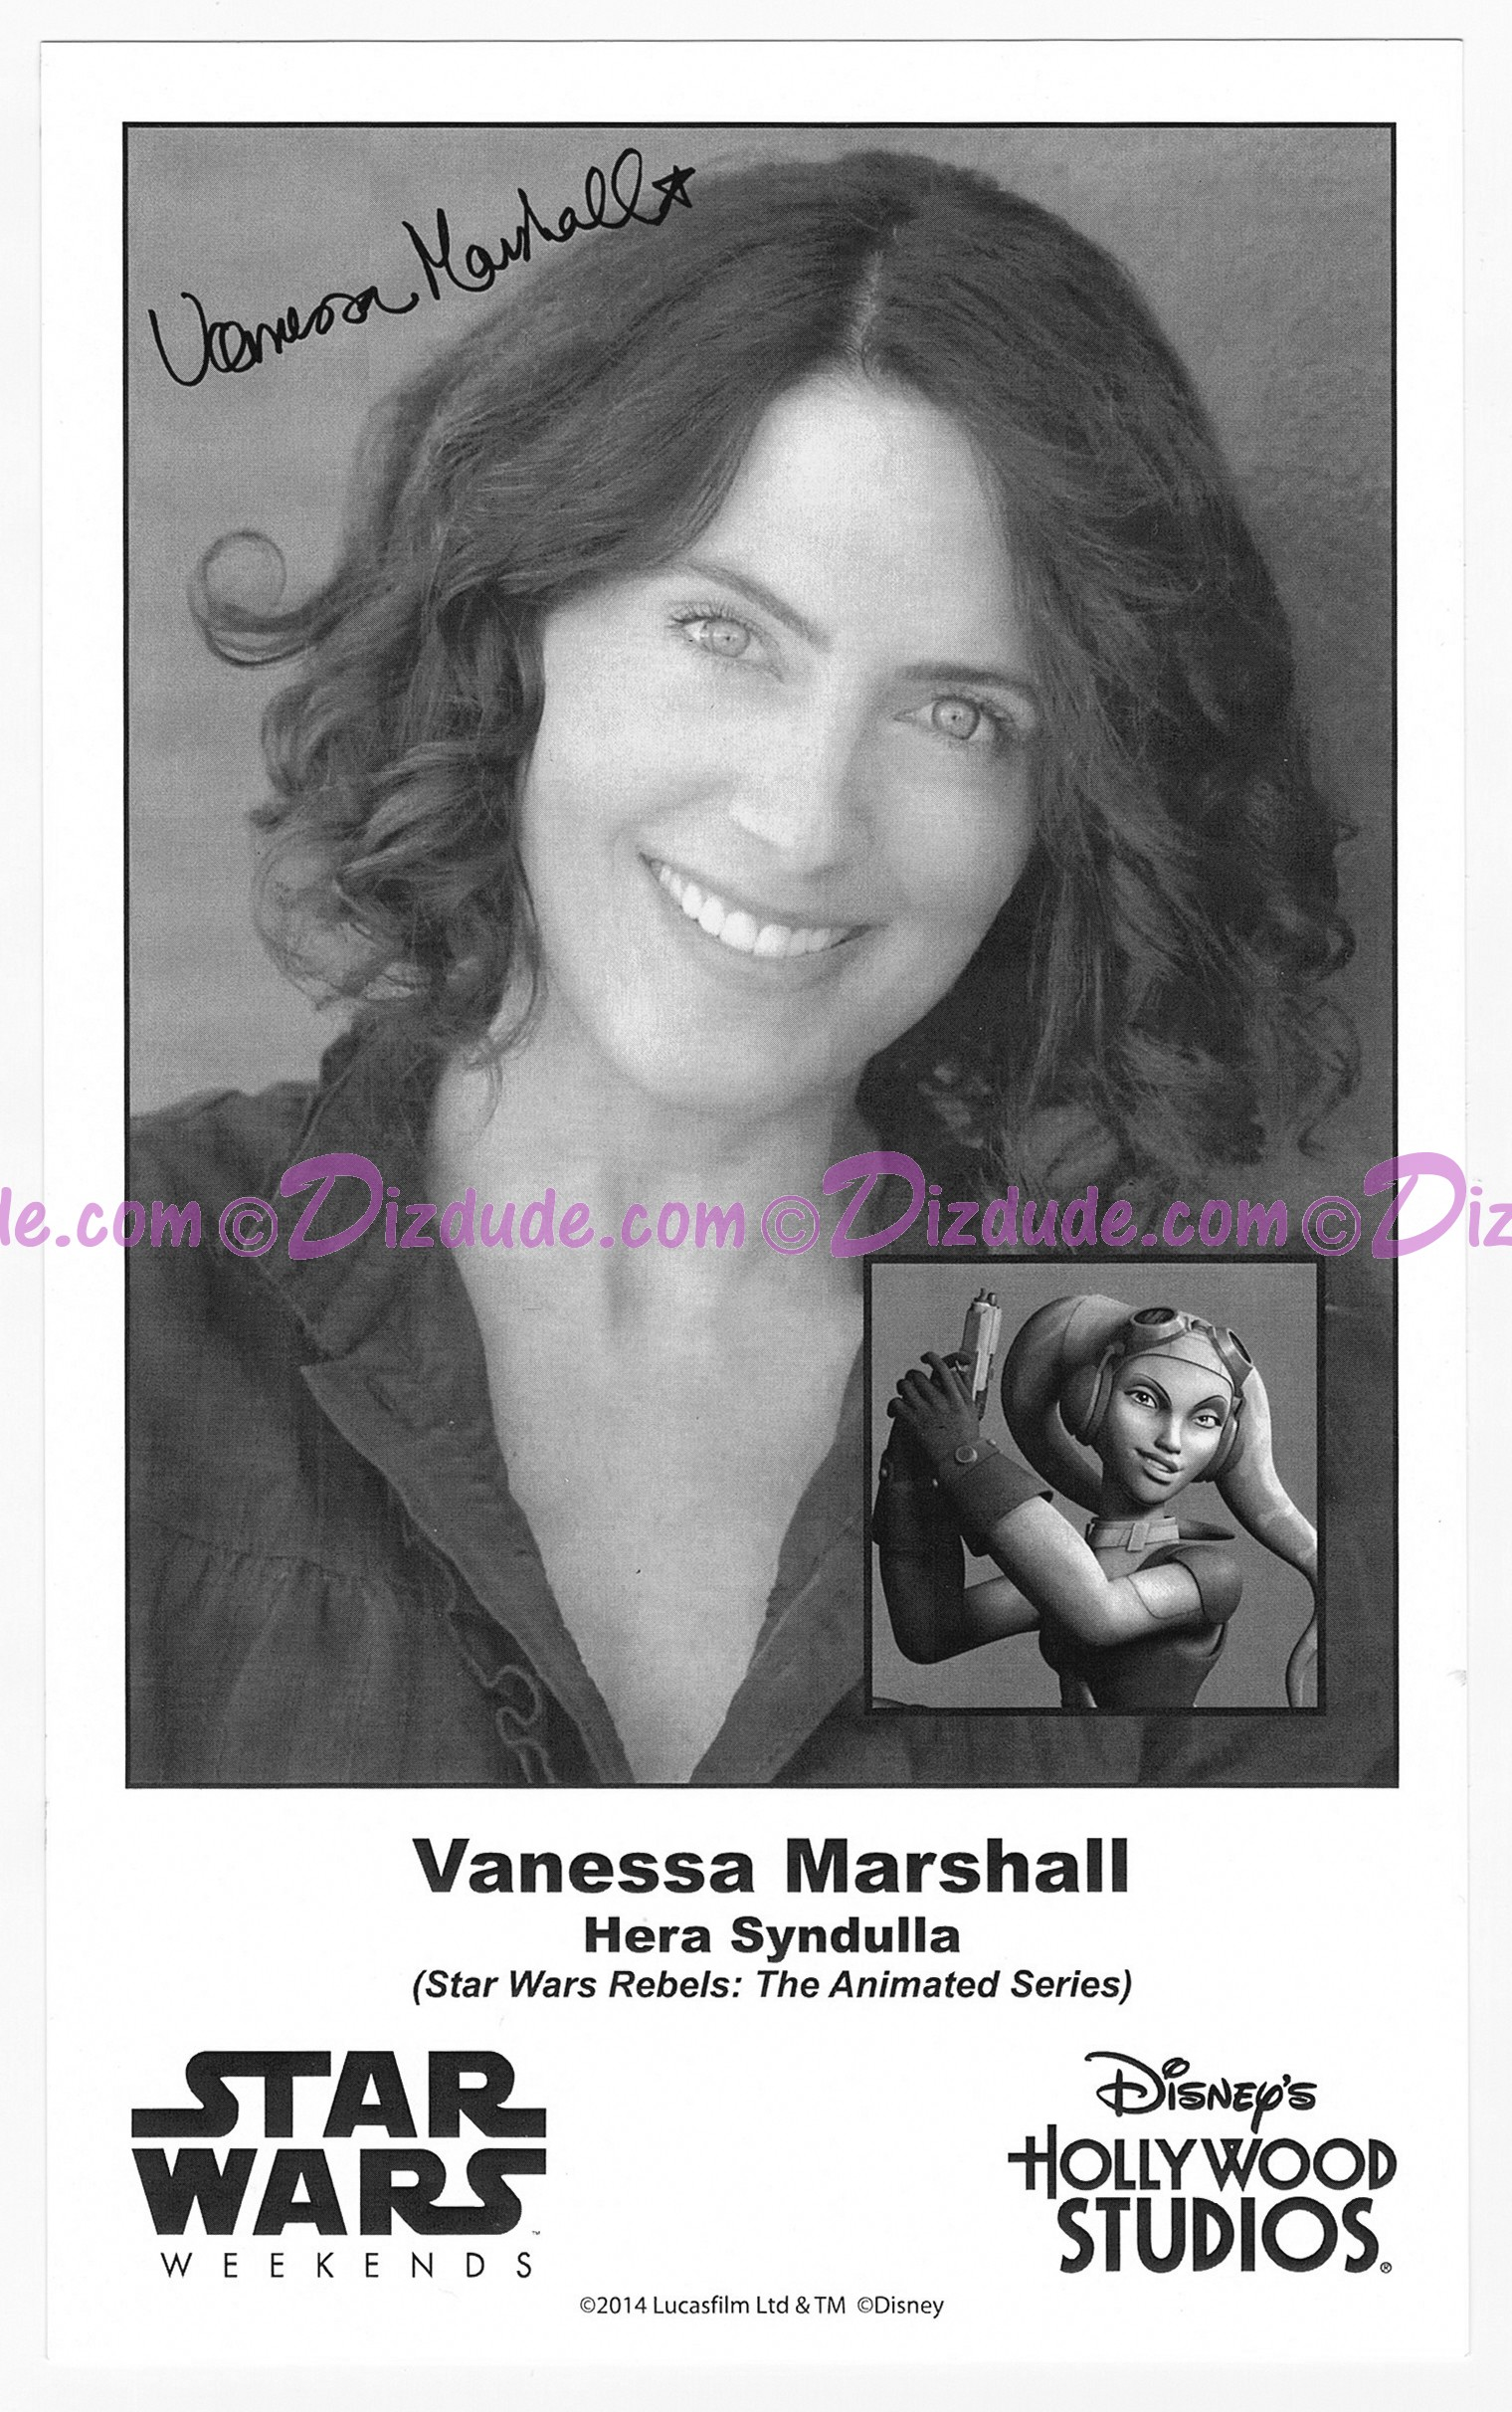 Vanessa Marshall the voice of Hera Syndulla Presigned Official Star Wars Weekends 2014 Celebrity Collector Photo © Dizdude.com